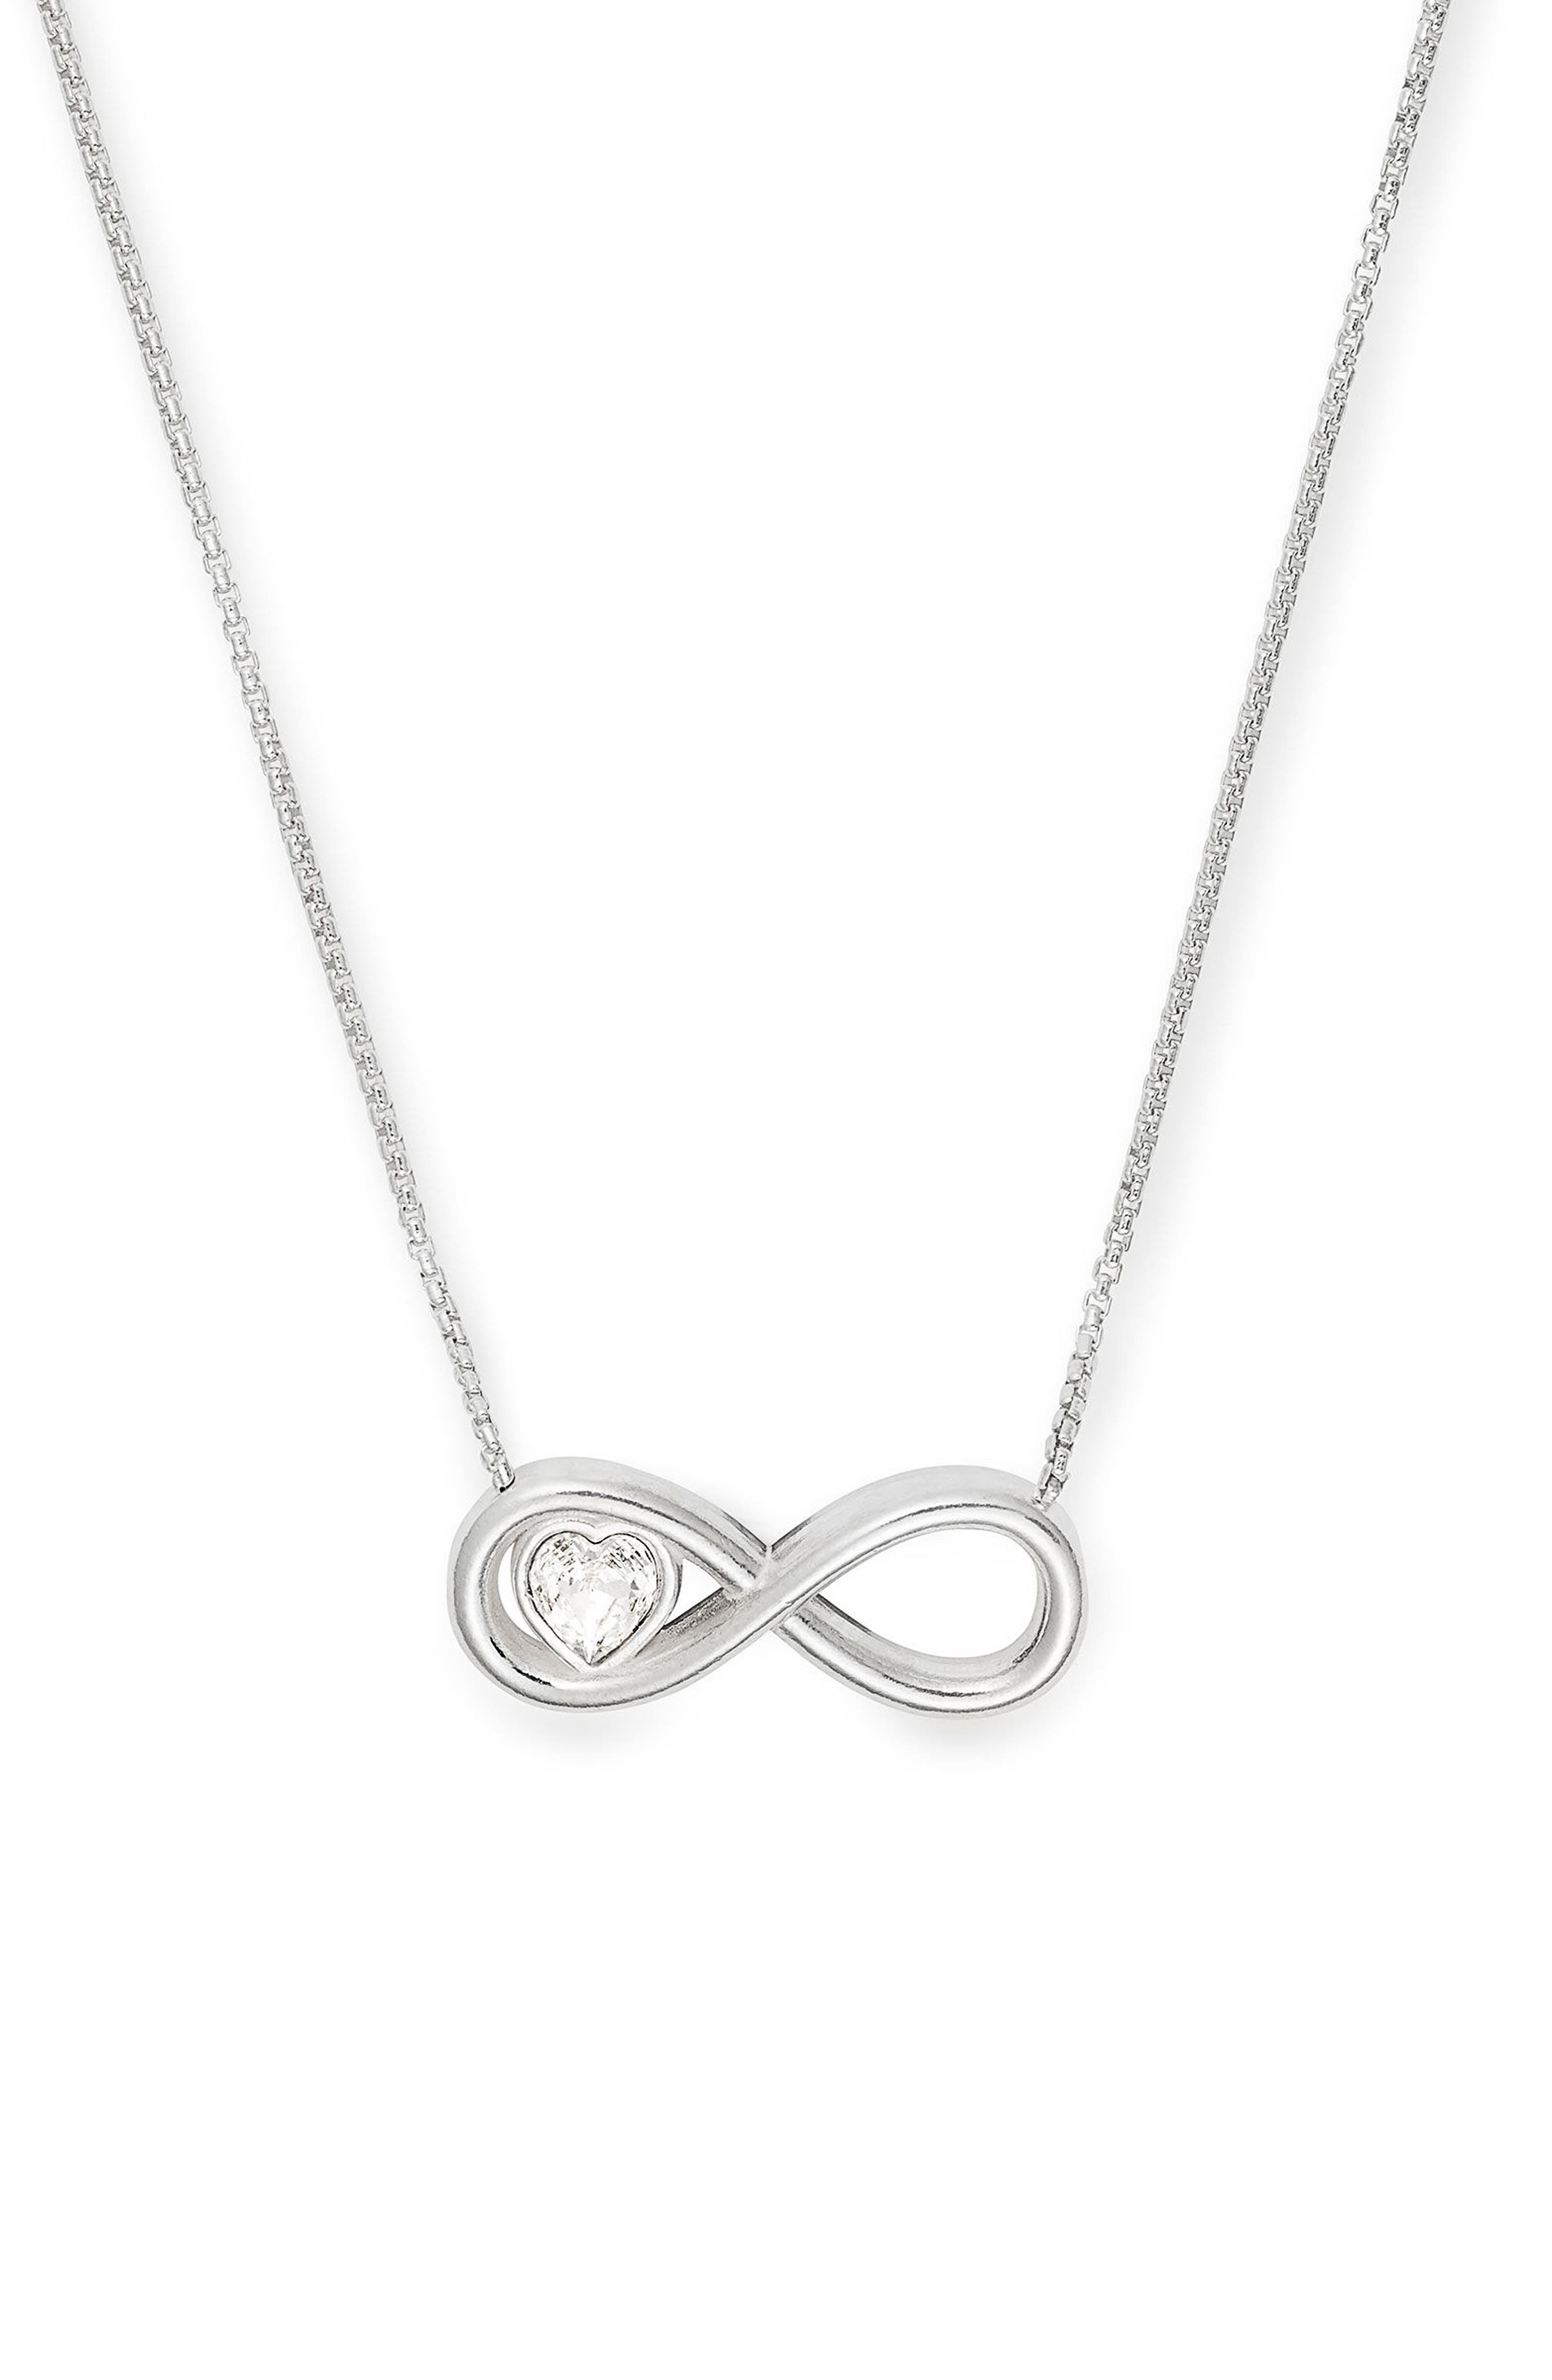 Infinite Love Necklace,                             Main thumbnail 1, color,                             Silver